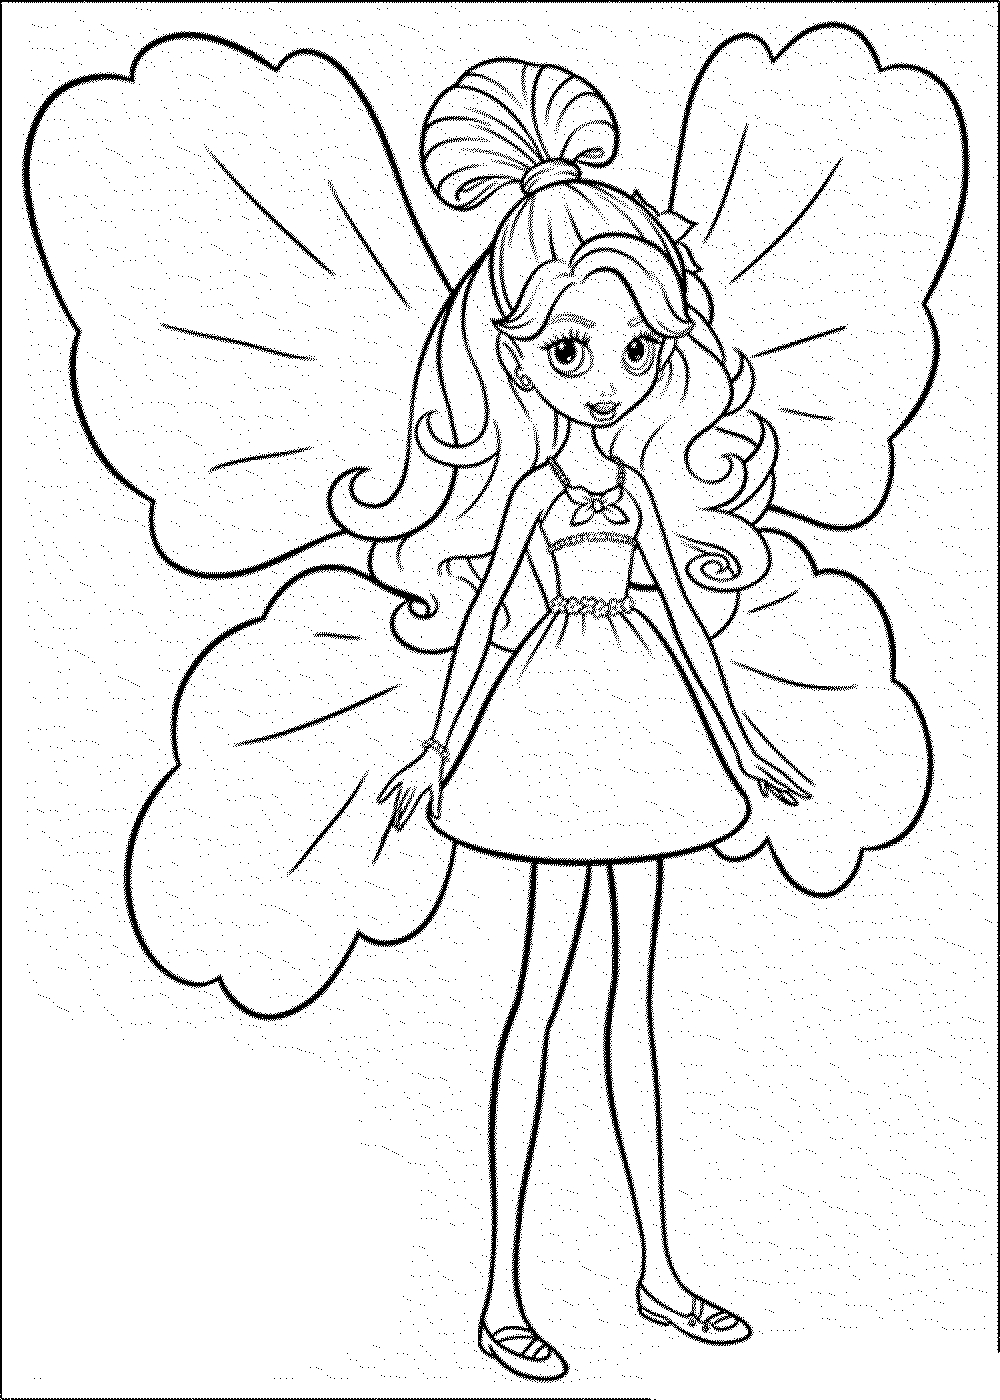 85 Barbie Coloring Pages For Girls Princess Friends And Gallery Of In The Dream